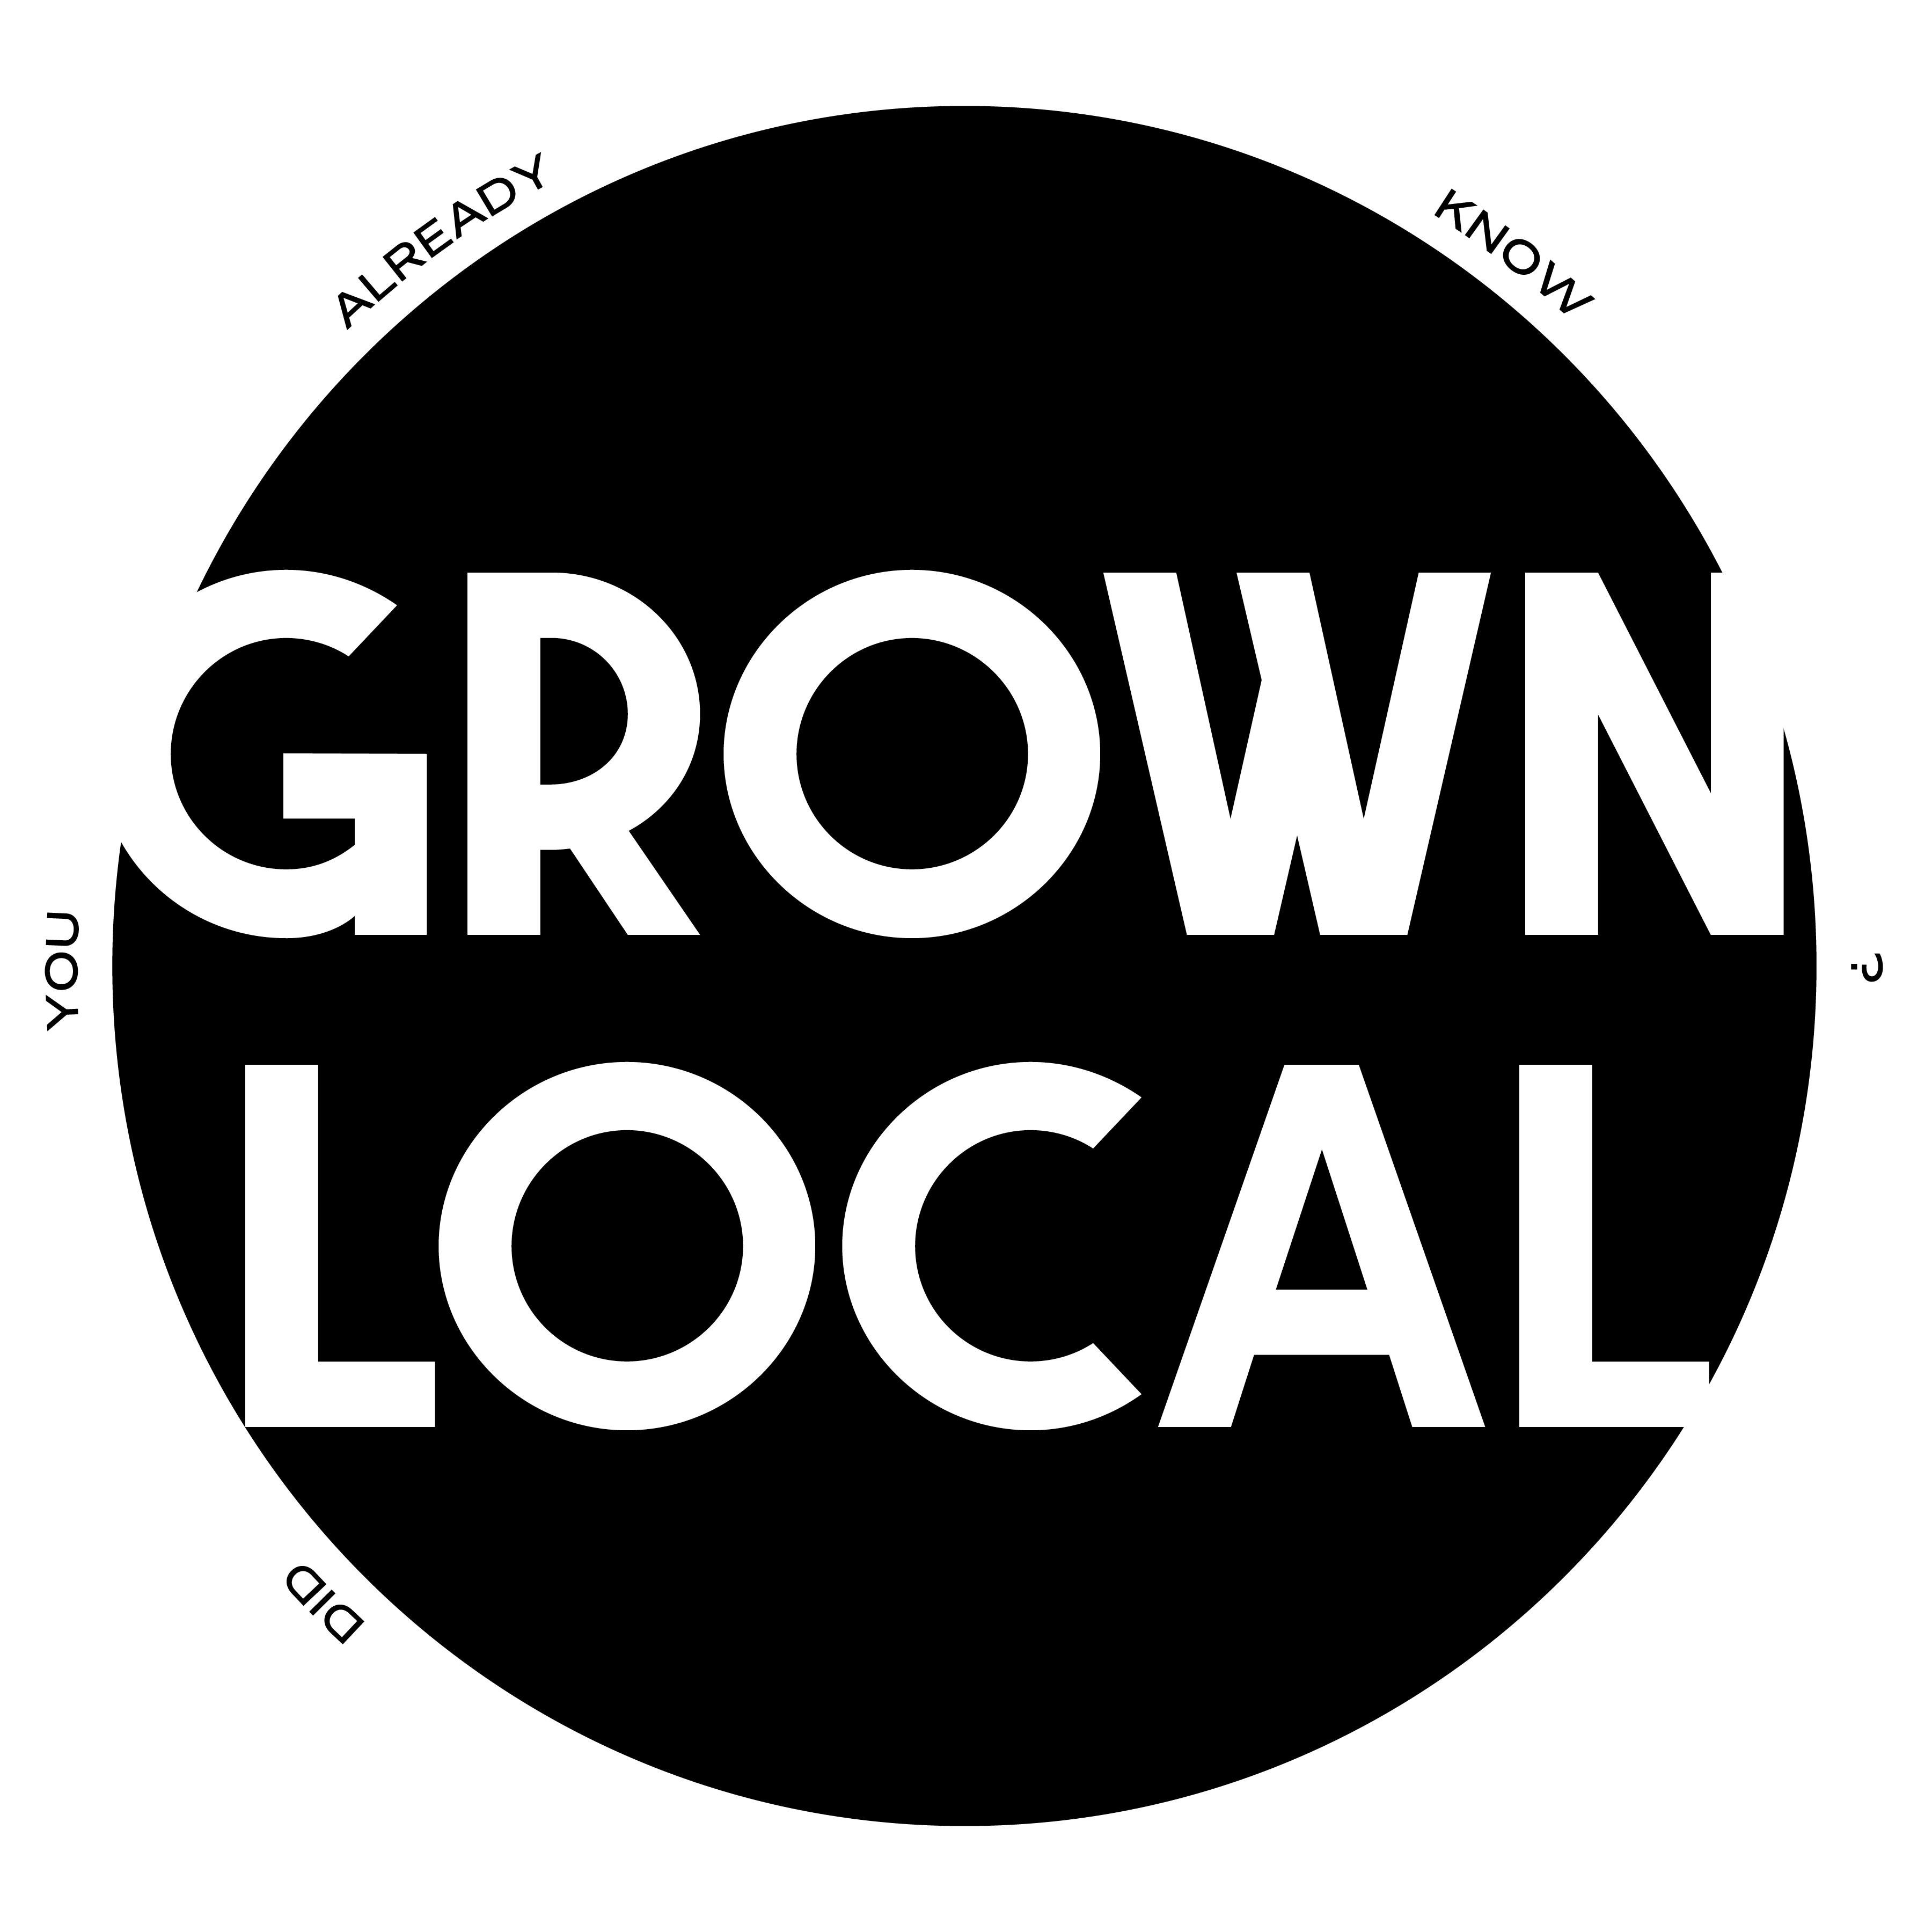 grown local